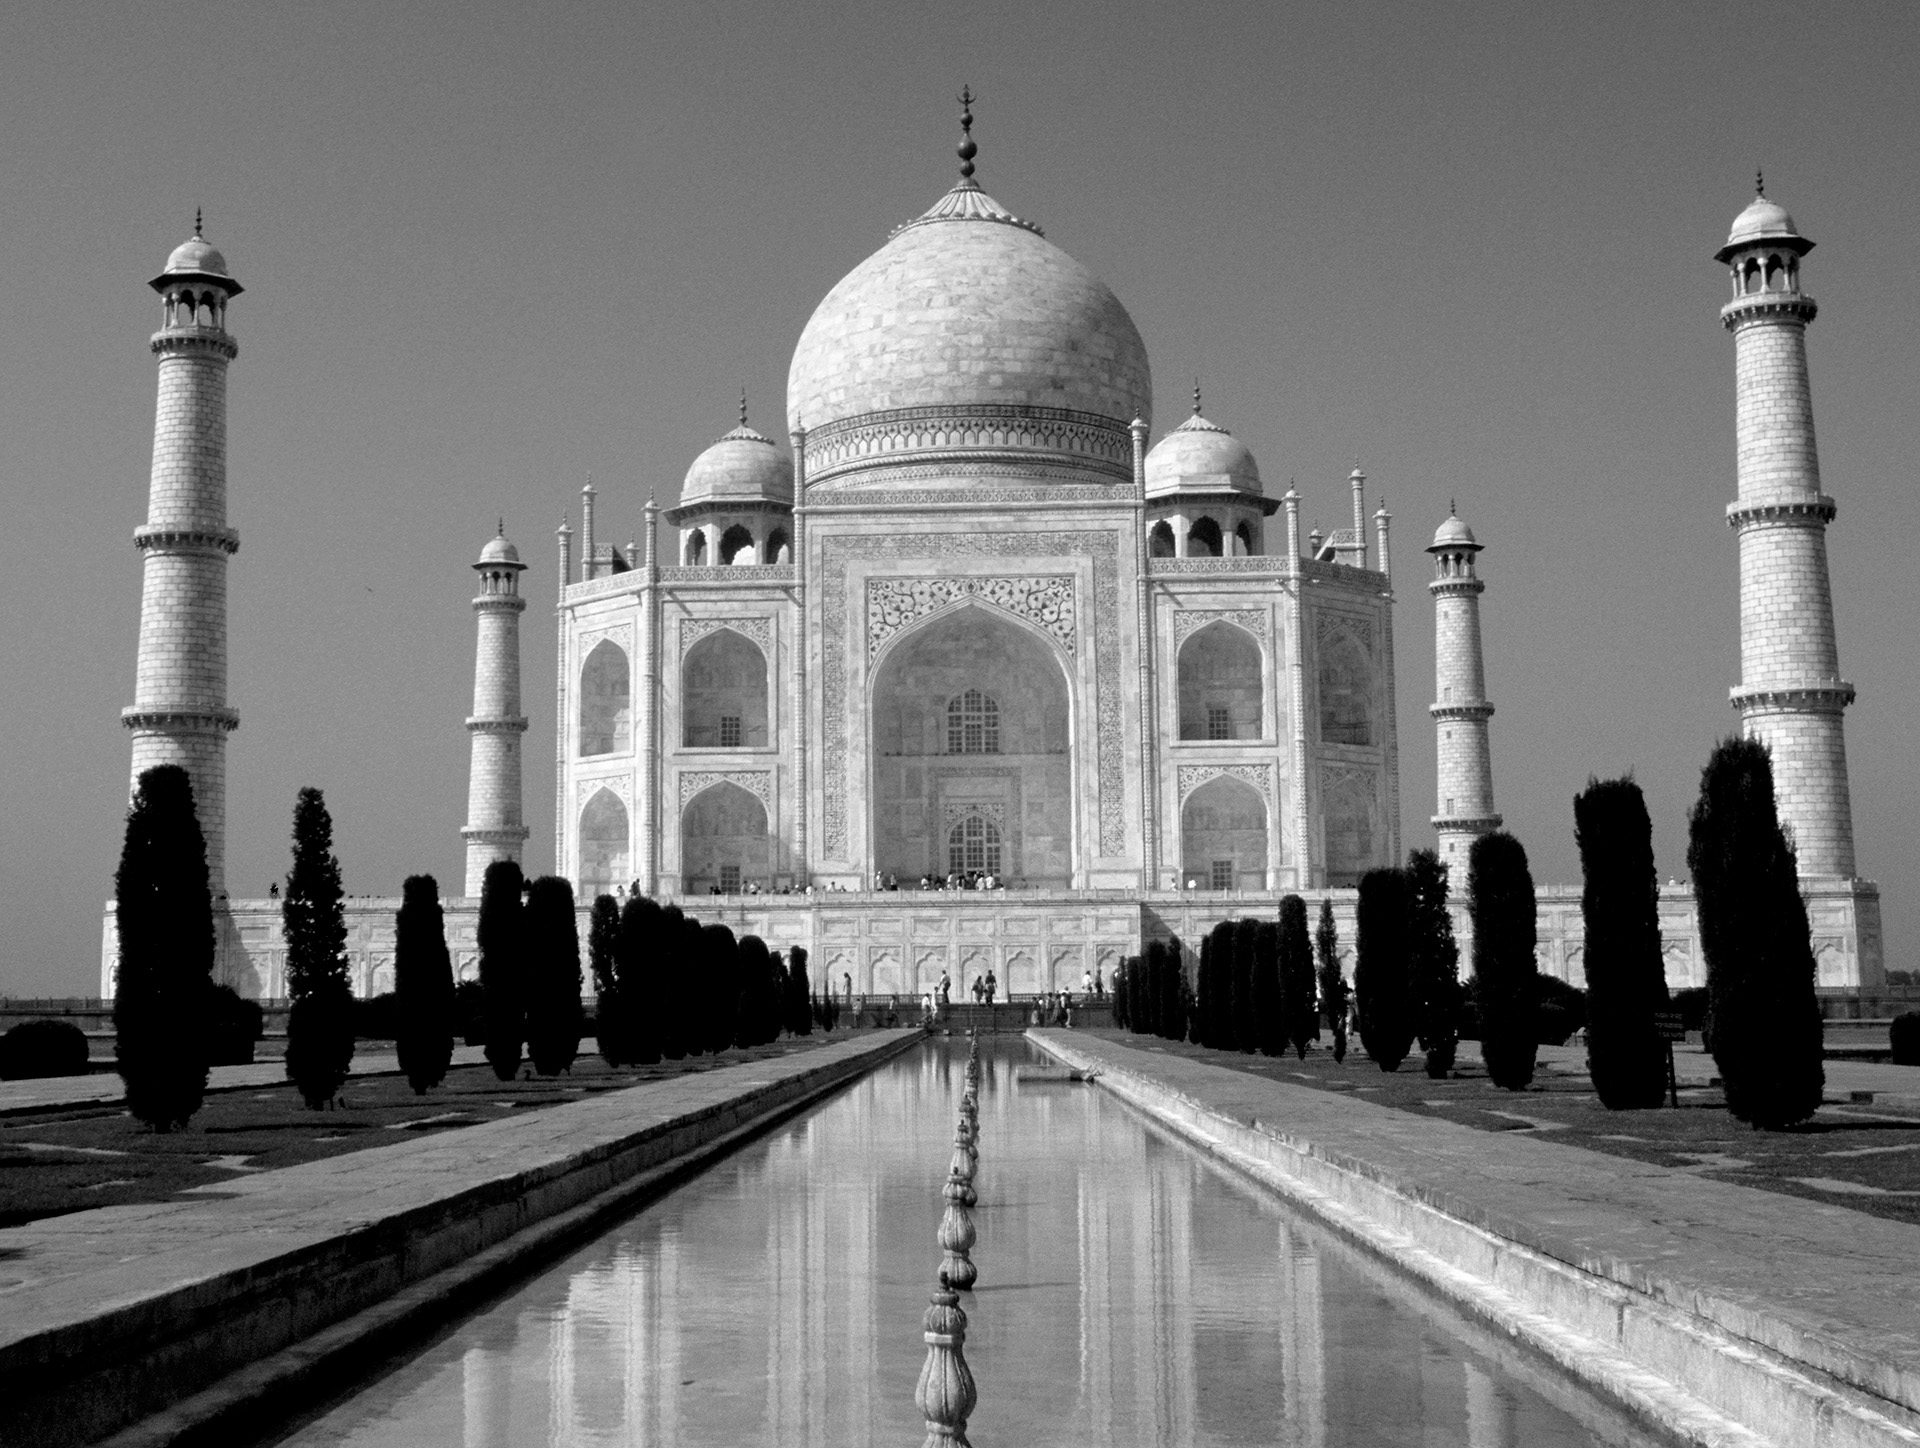 BioTrek Adventure Travel Tours - India Taj Mahal